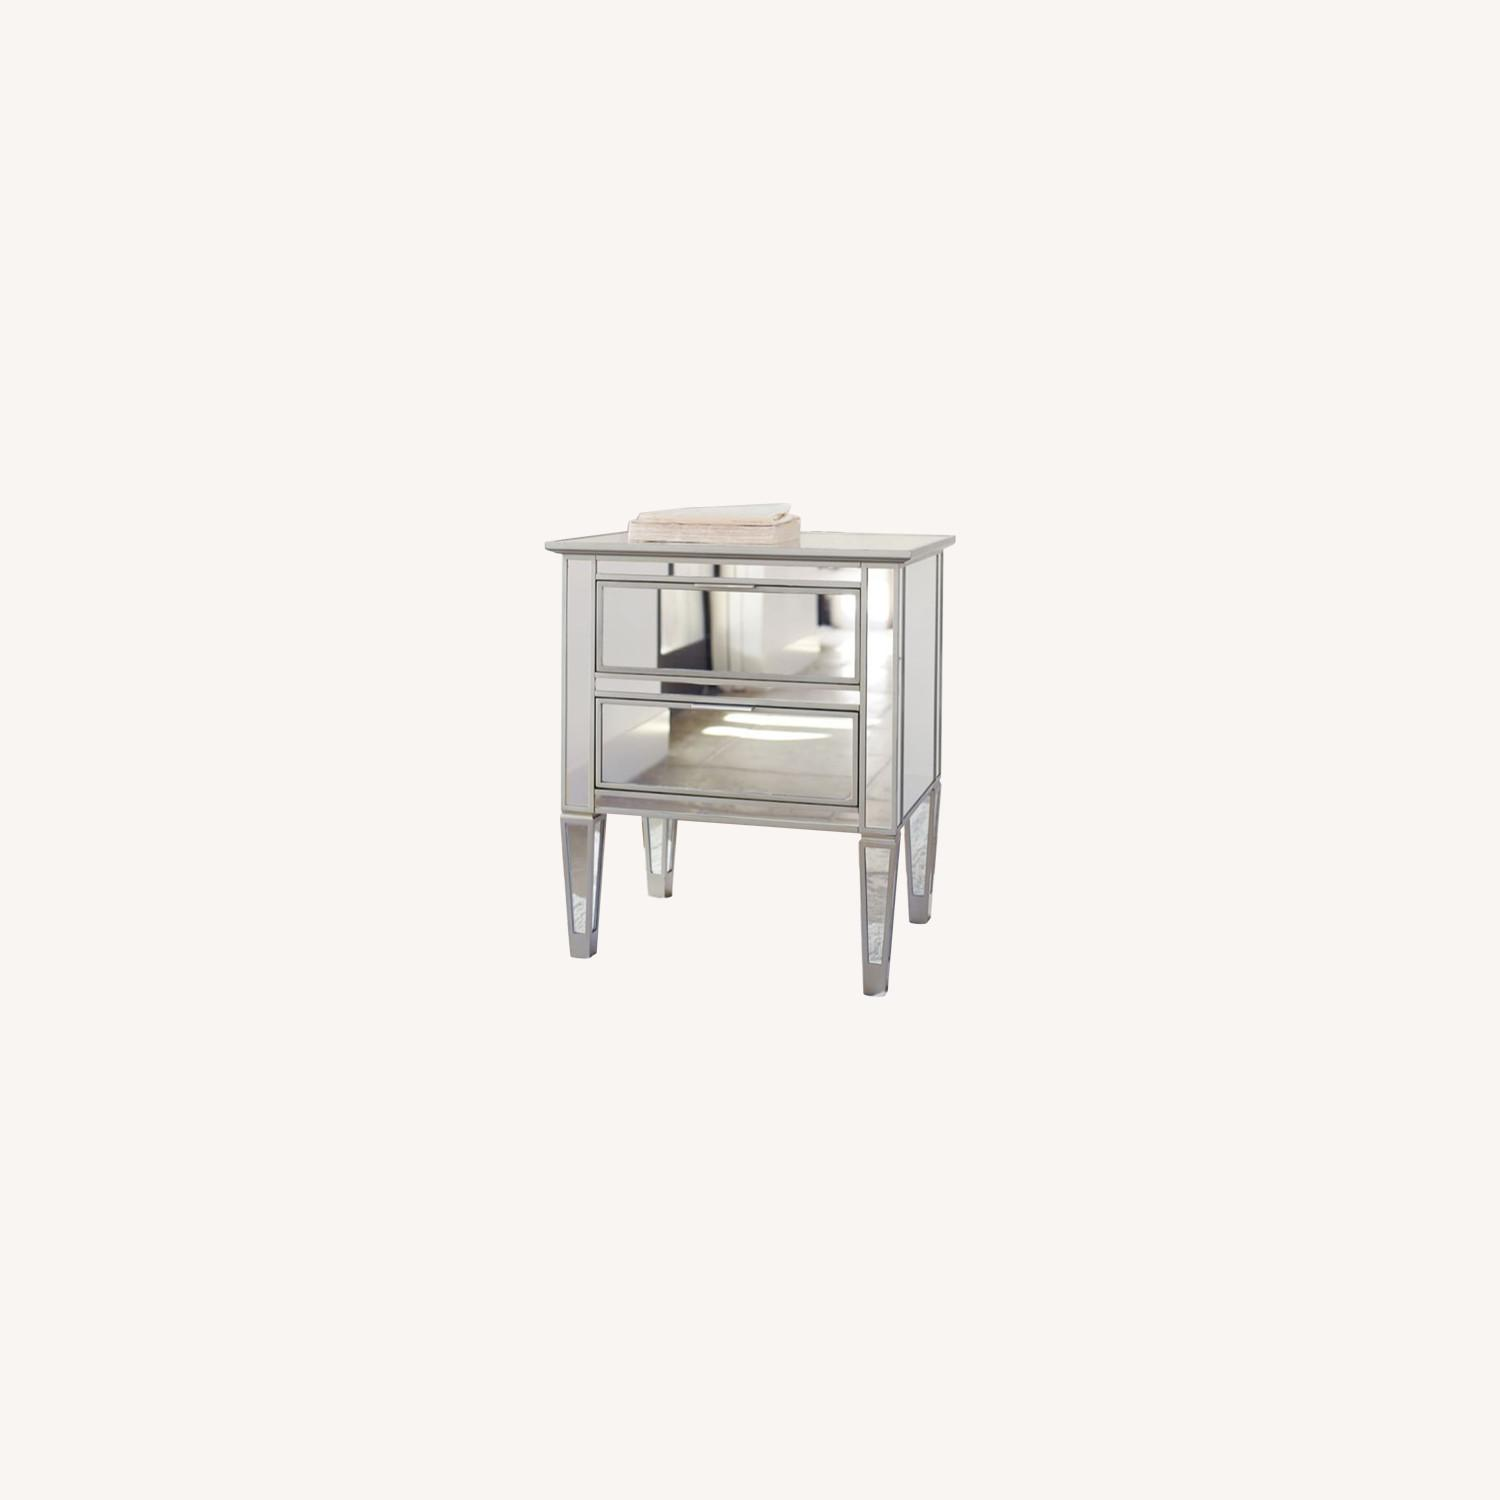 Pottery Barn Mirrored Bedside Tables - image-0